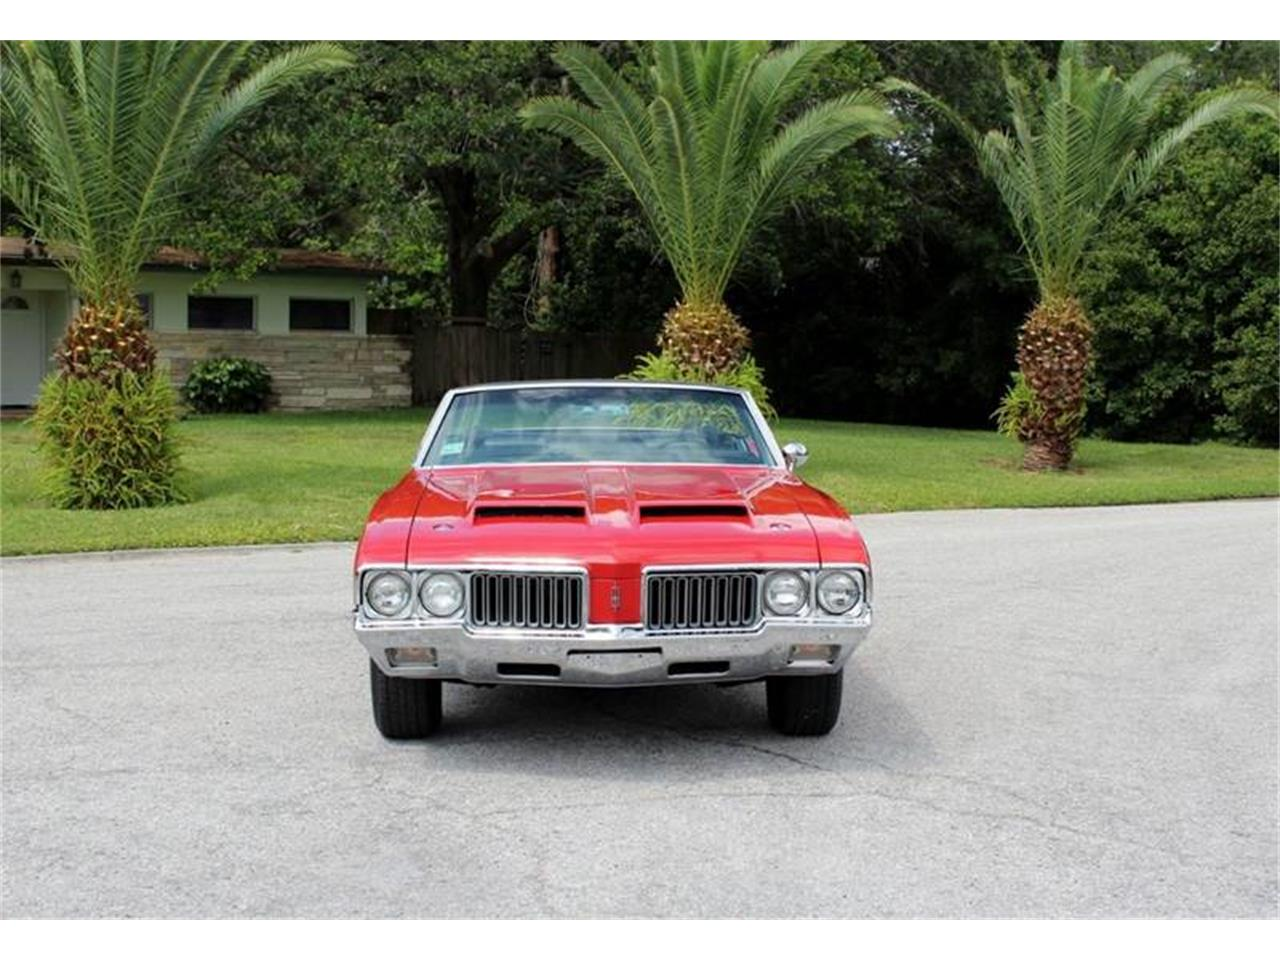 Large Picture of Classic '70 Oldsmobile Cutlass - $32,900.00 Offered by PJ's Auto World - Q478